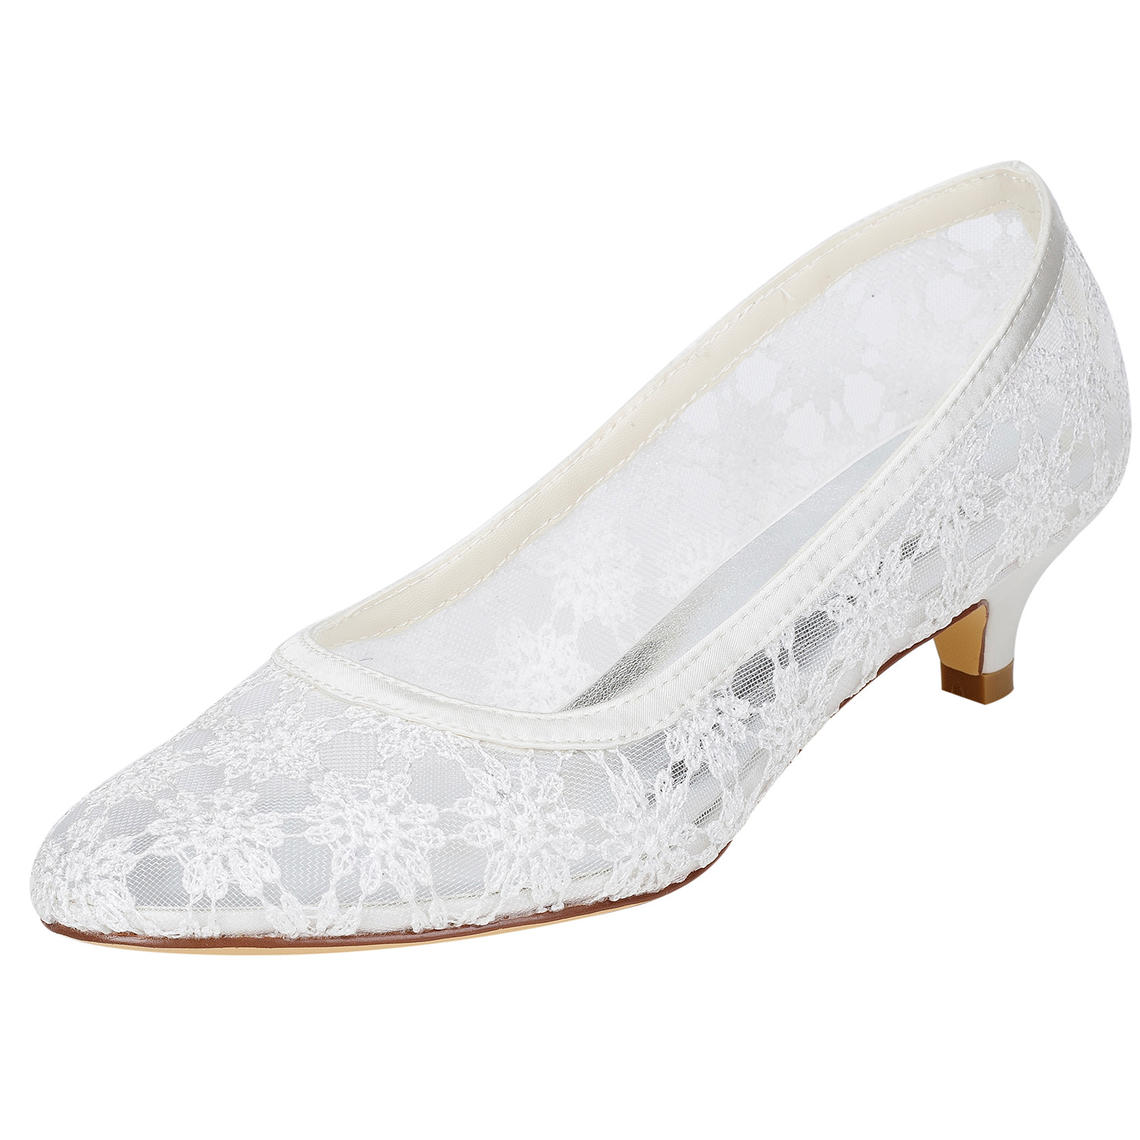 18d27cdcf1 Women's Pumps Kitten Heel Lace With Hollow-out Wedding Shoes (047208429). Loading  zoom